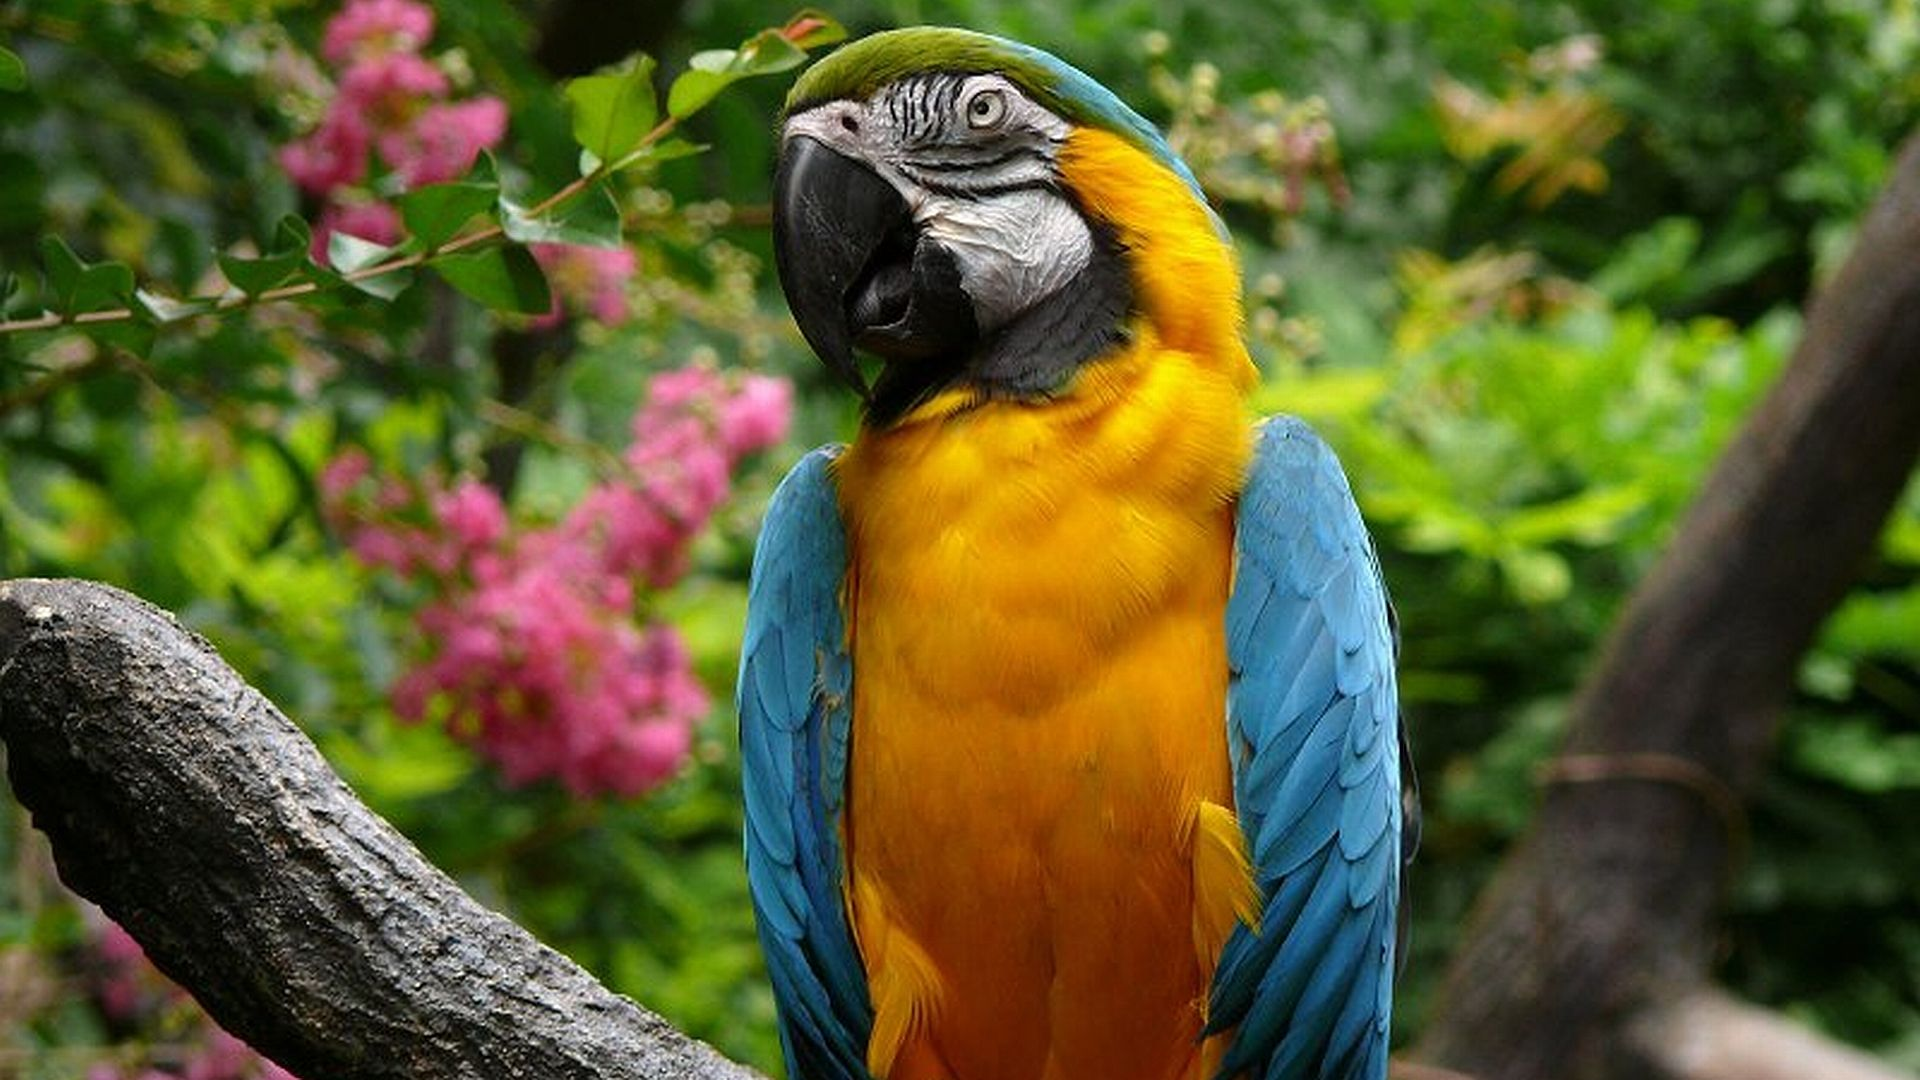 The Wallpapers Of Parrots